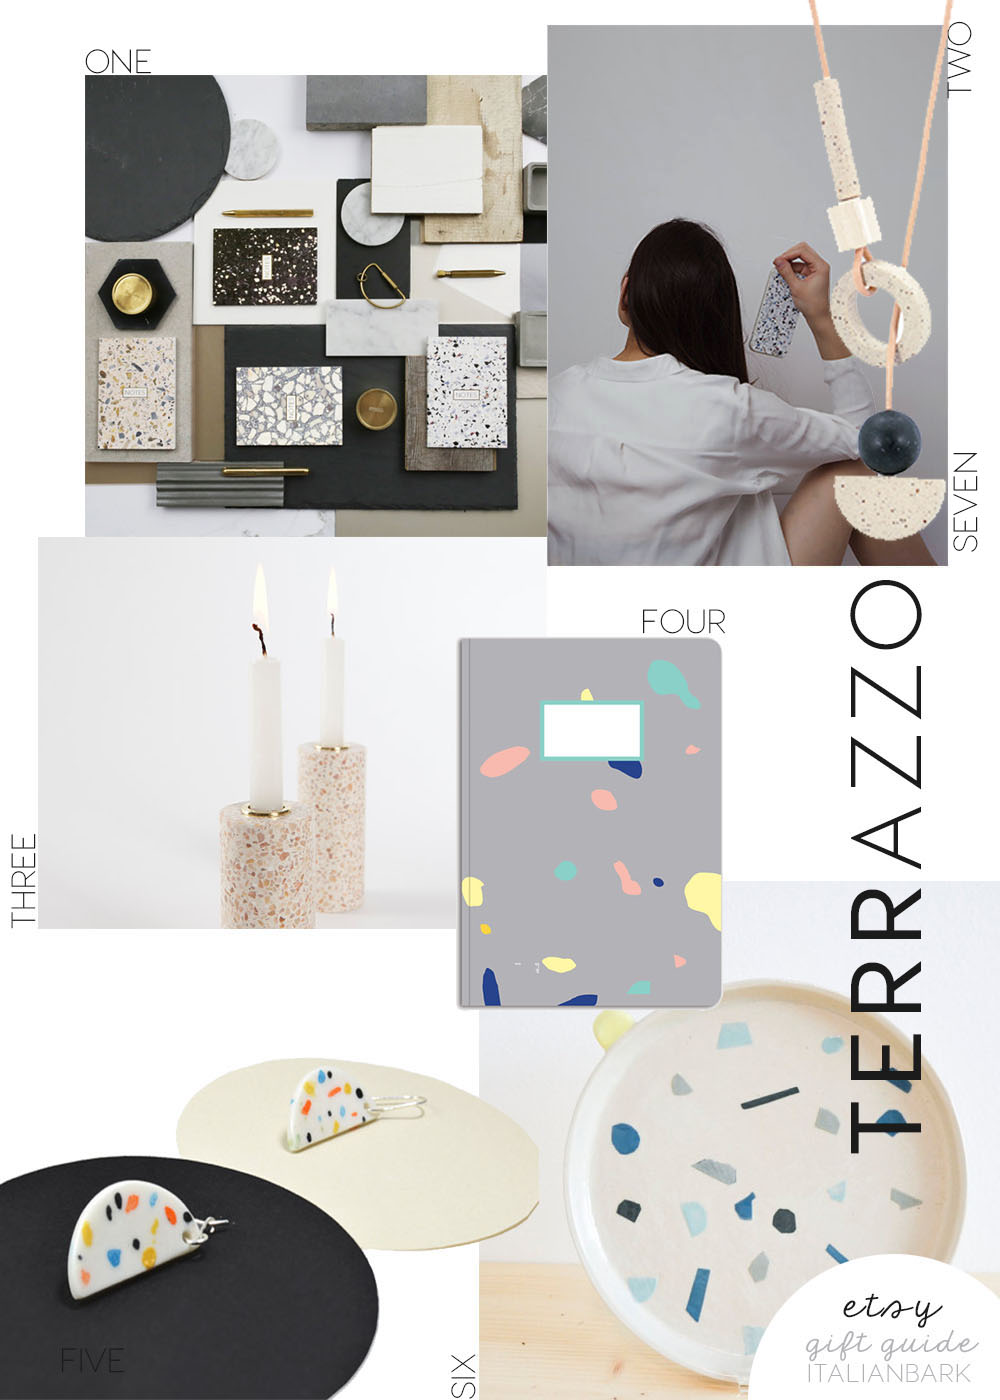 90 interior design gift guide holiday gift guide for Interior design gifts